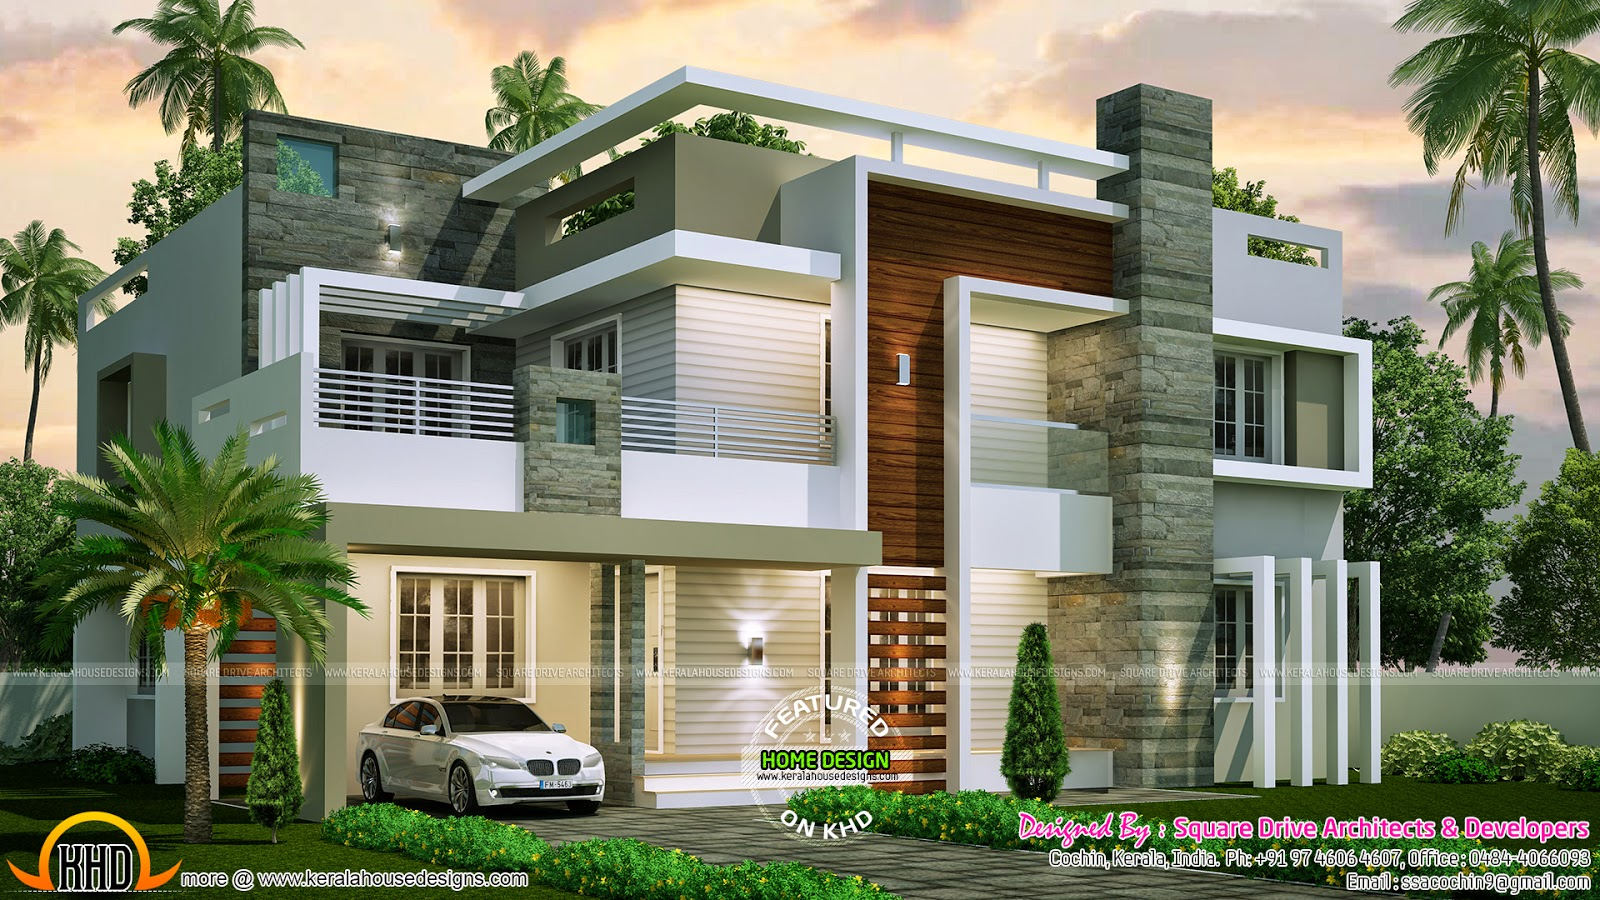 4 bedroom contemporary home design kerala home design Modern home building plans